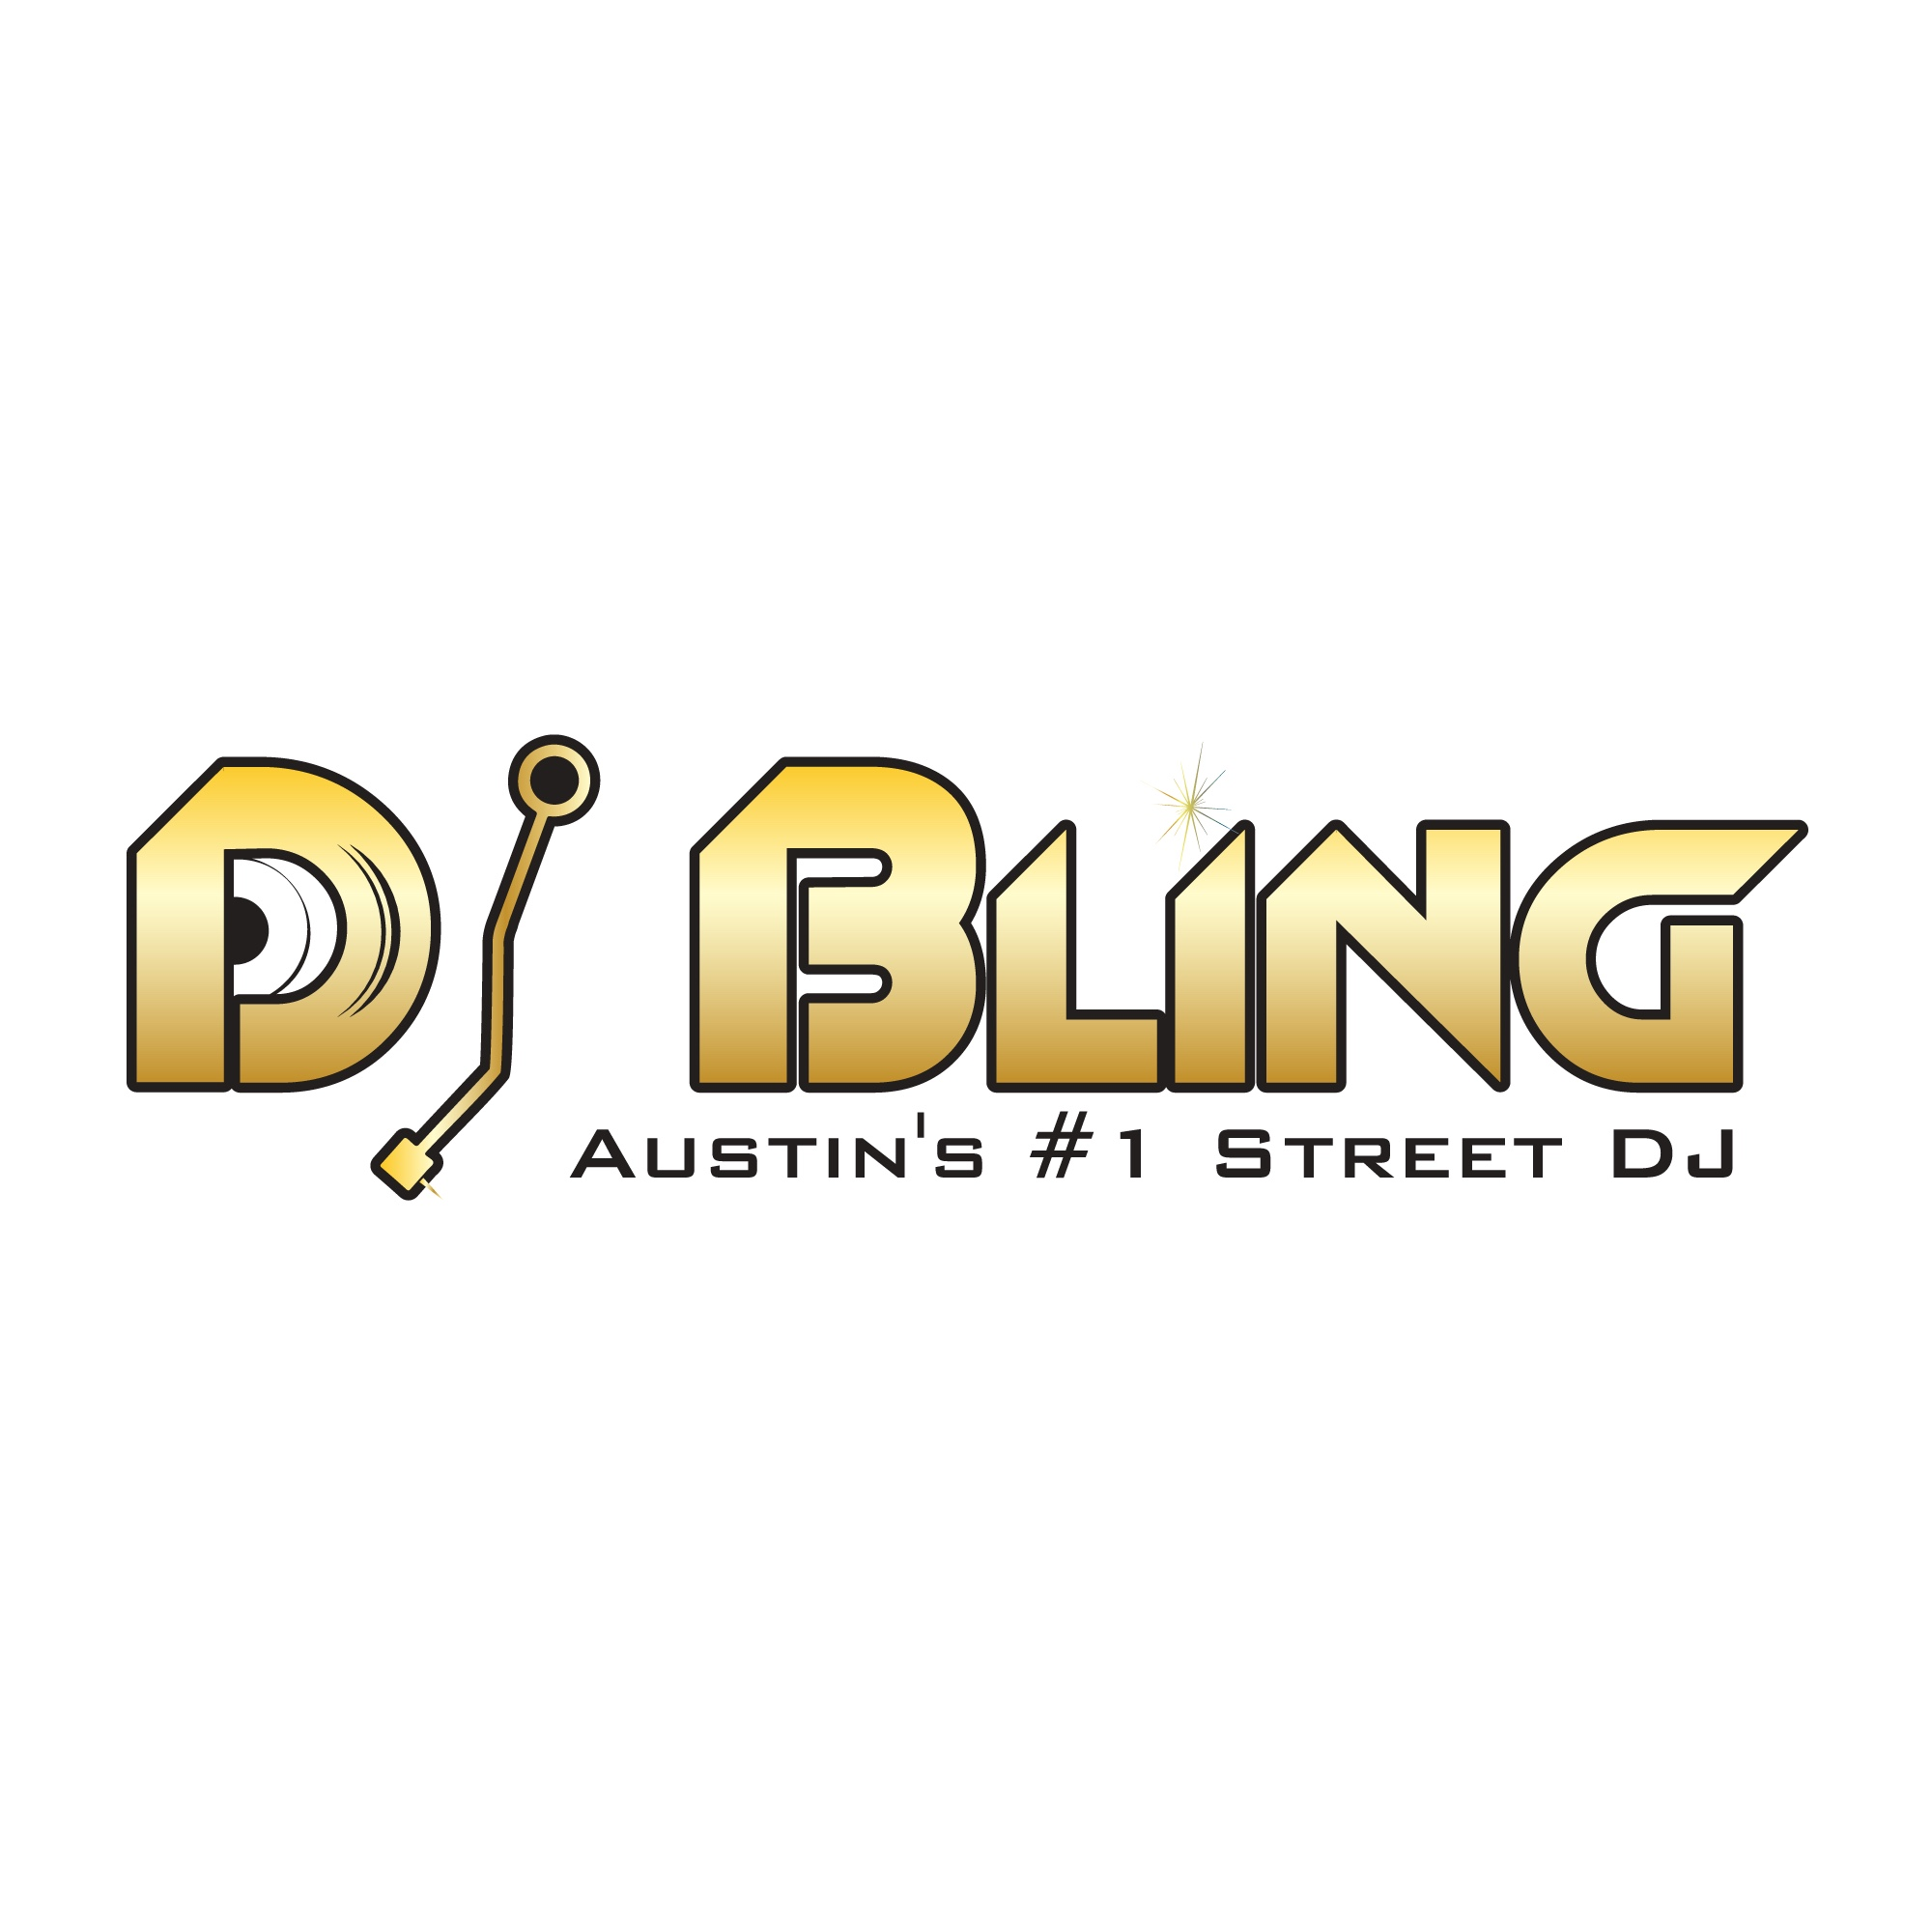 #Austin, Austin, Texas, #Texas, #DJBling, DJ Bling, #PureTruthLLC, Pure Truth LLC, #PUreTruth DJs, Pure Truth DJs